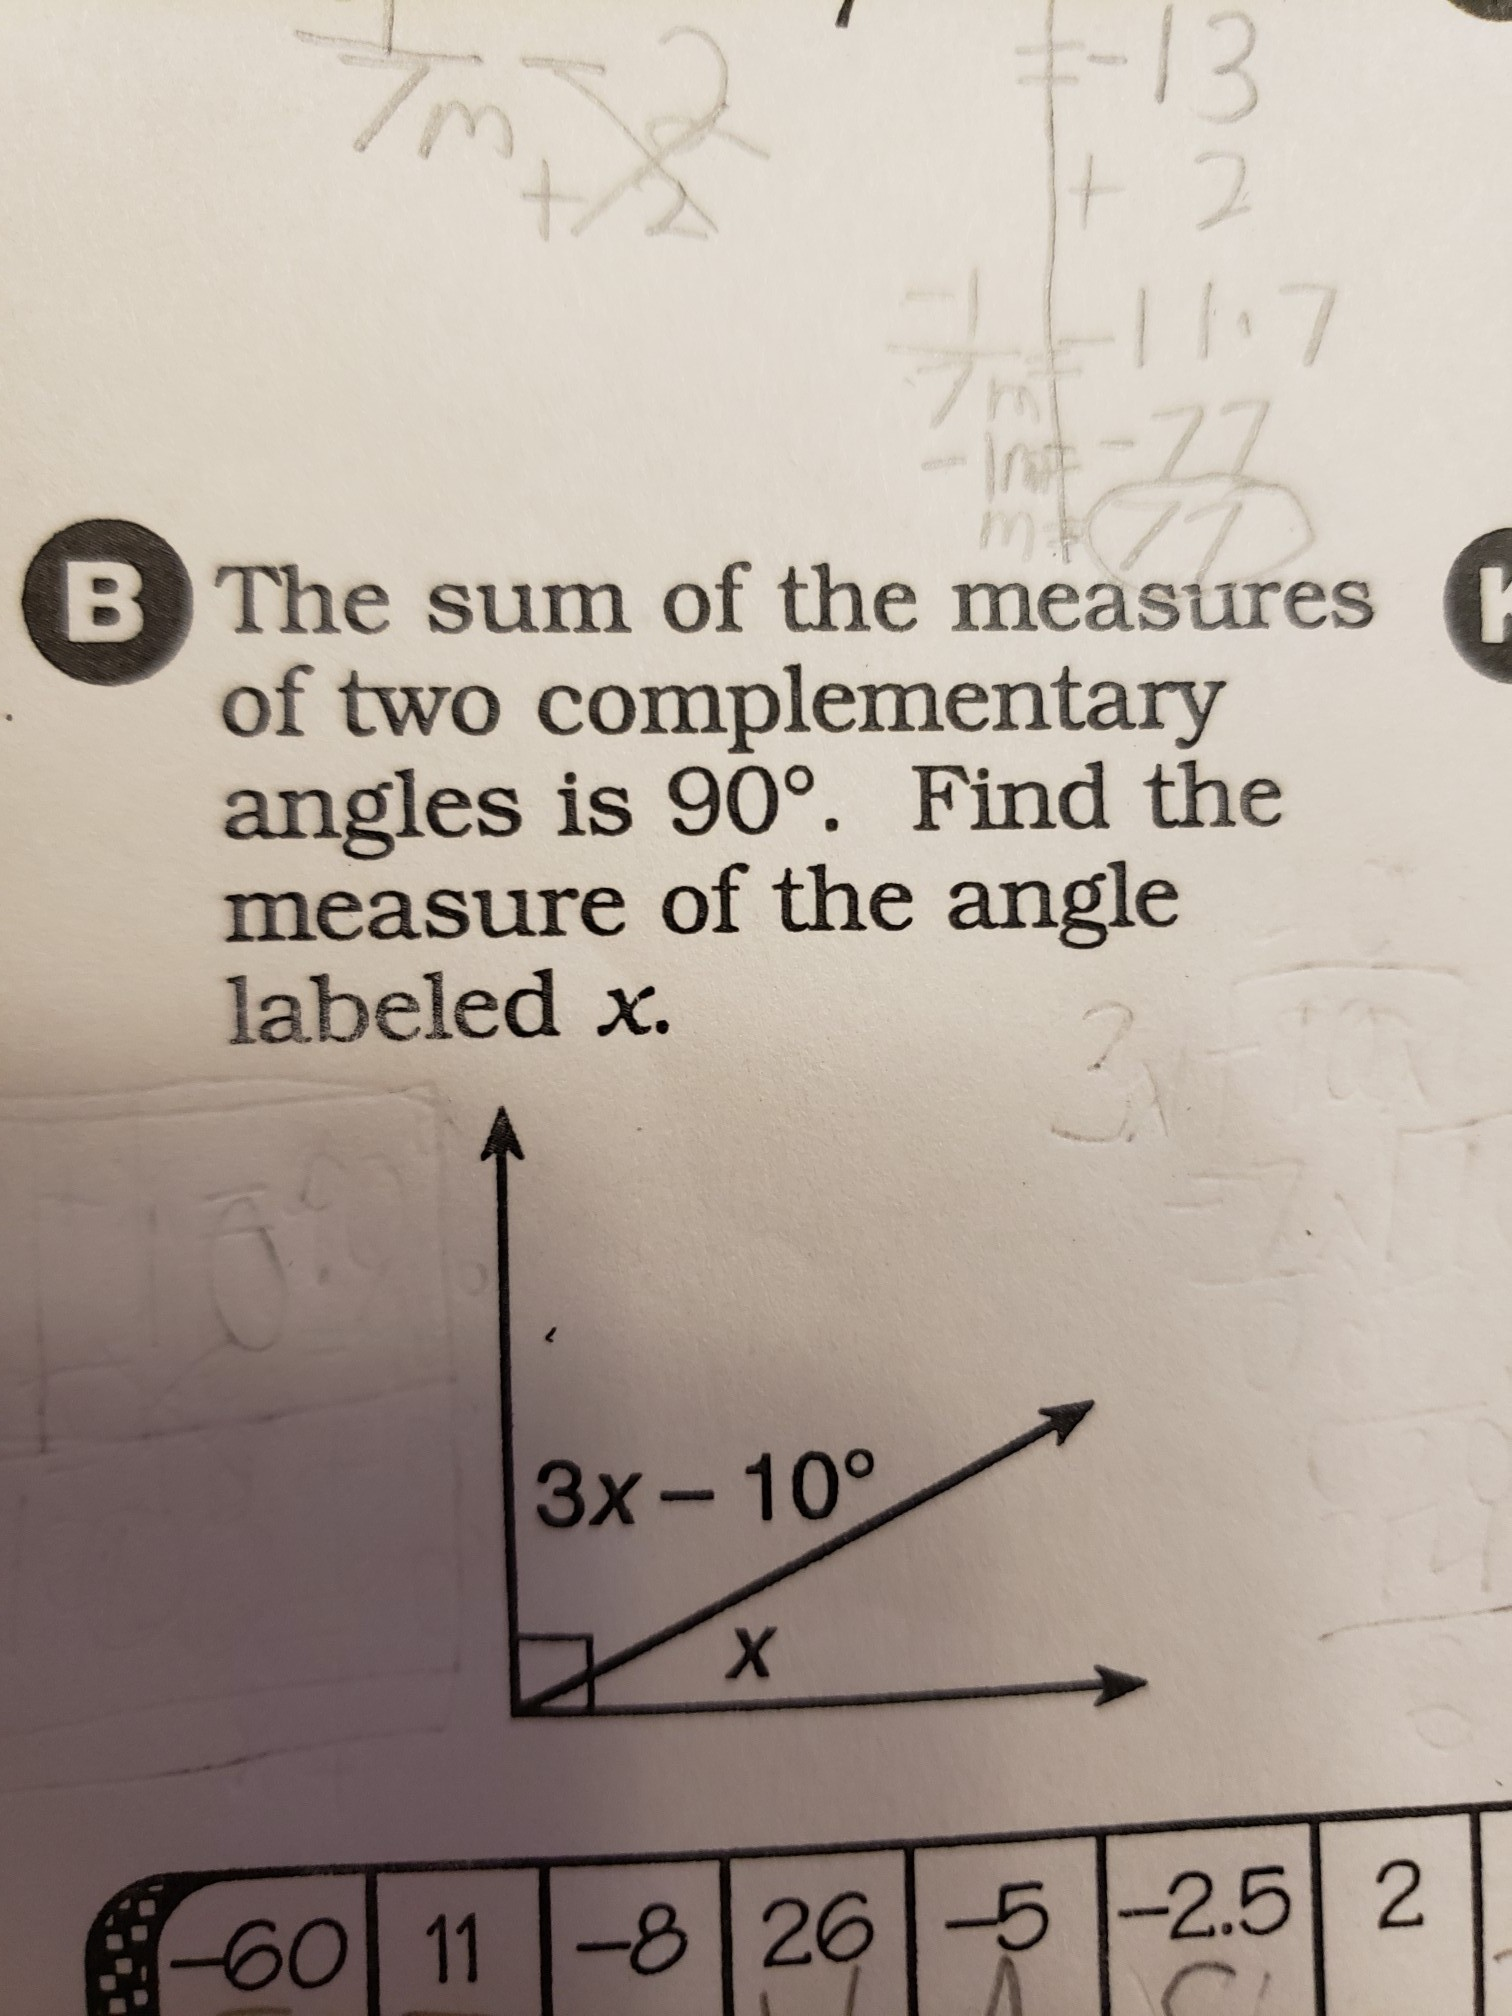 What Is The Sum Of The Measures Of Two Complementary